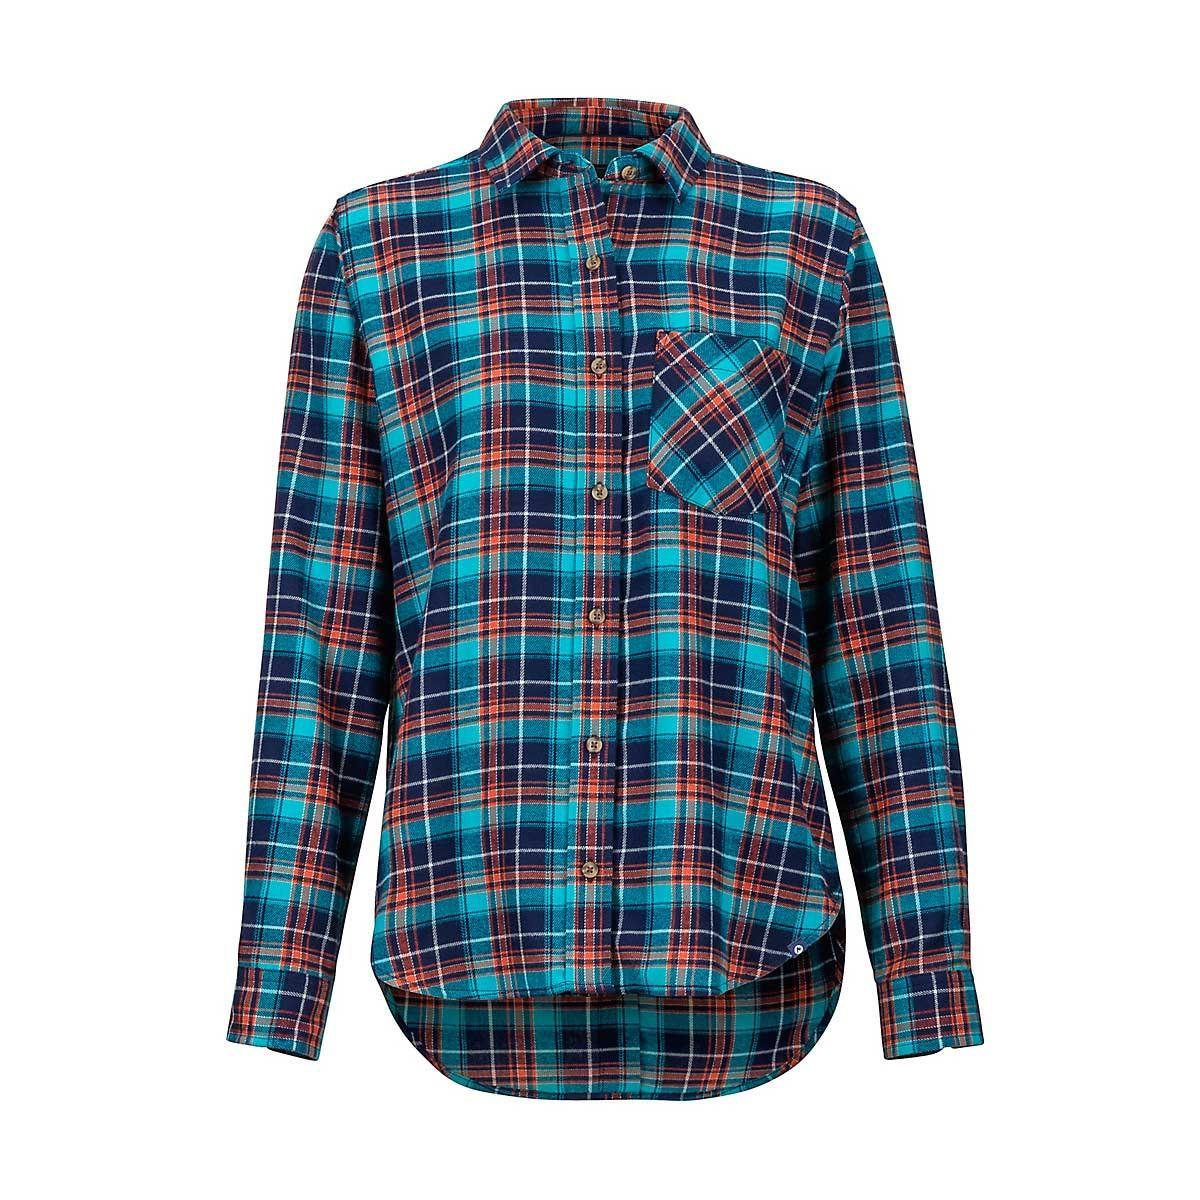 Marmot Women's Maggie Midweight Flannel Shirt in Arctic Navy